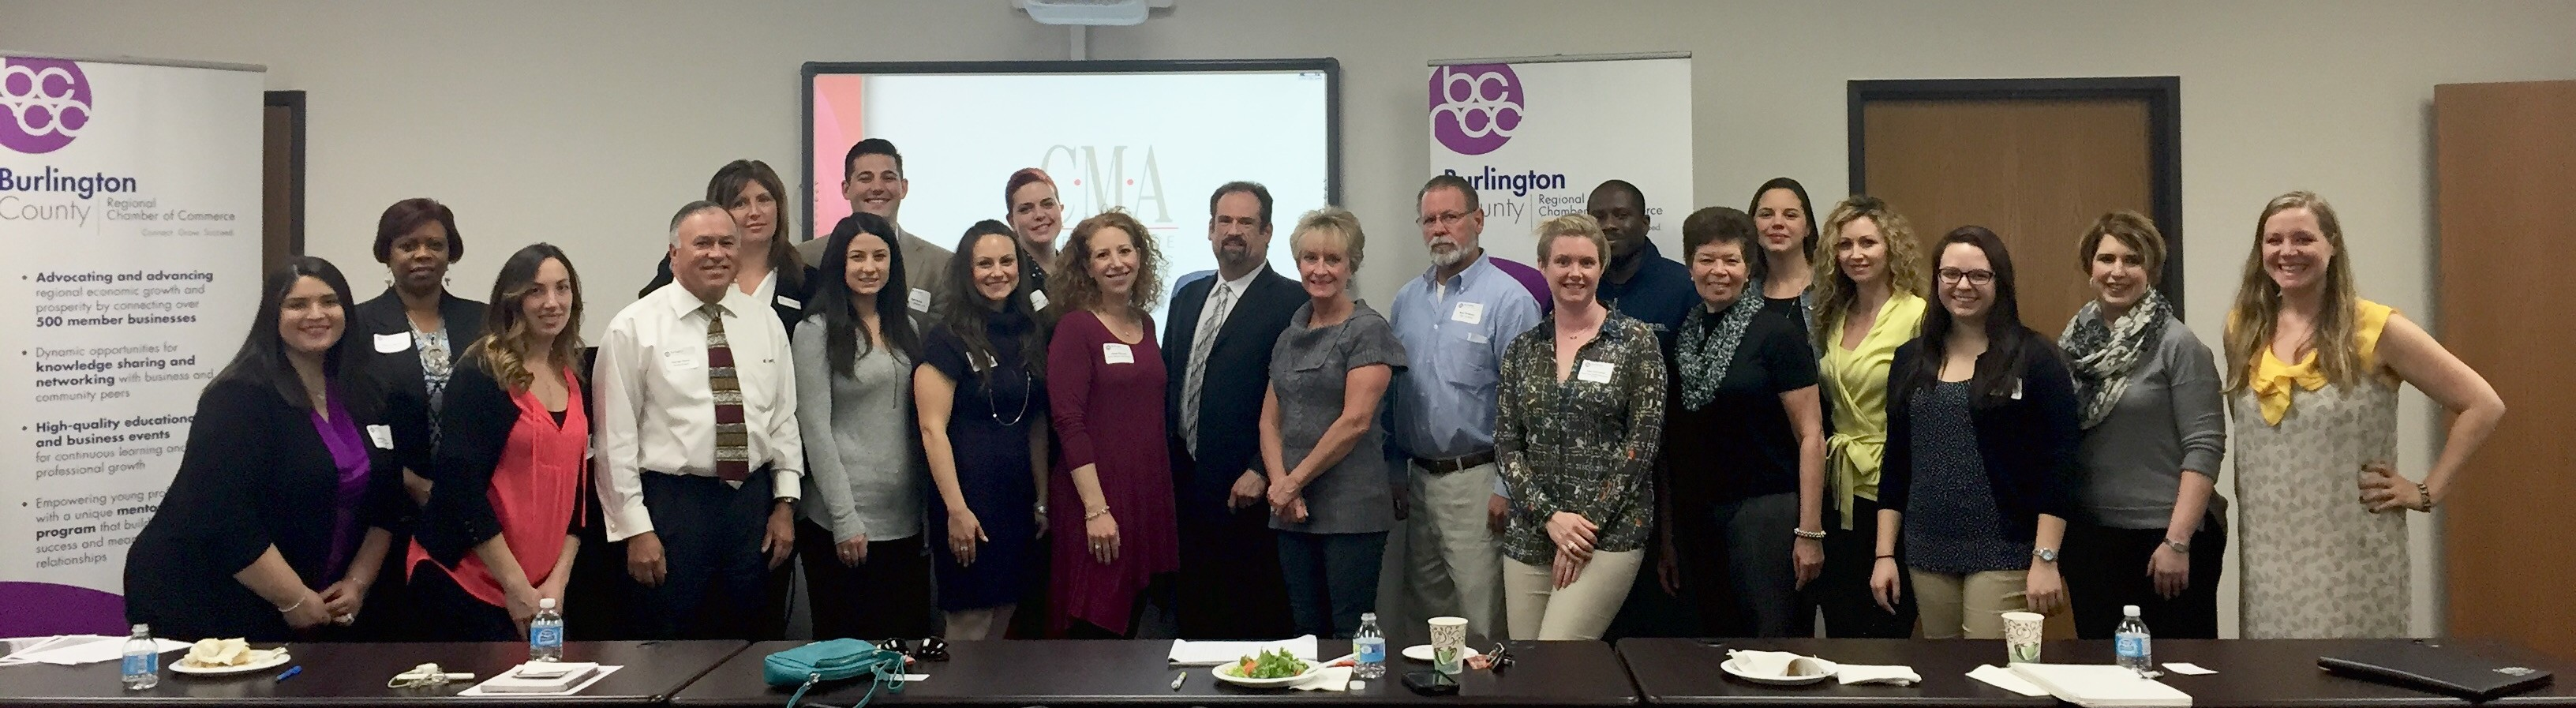 It was a full house at the Burlington County Regional Chamber of Commerce luncheon today where Kenneth Hitchner, public relations and social media director at Creative Marketing Alliance spoke about building a brand on social media.